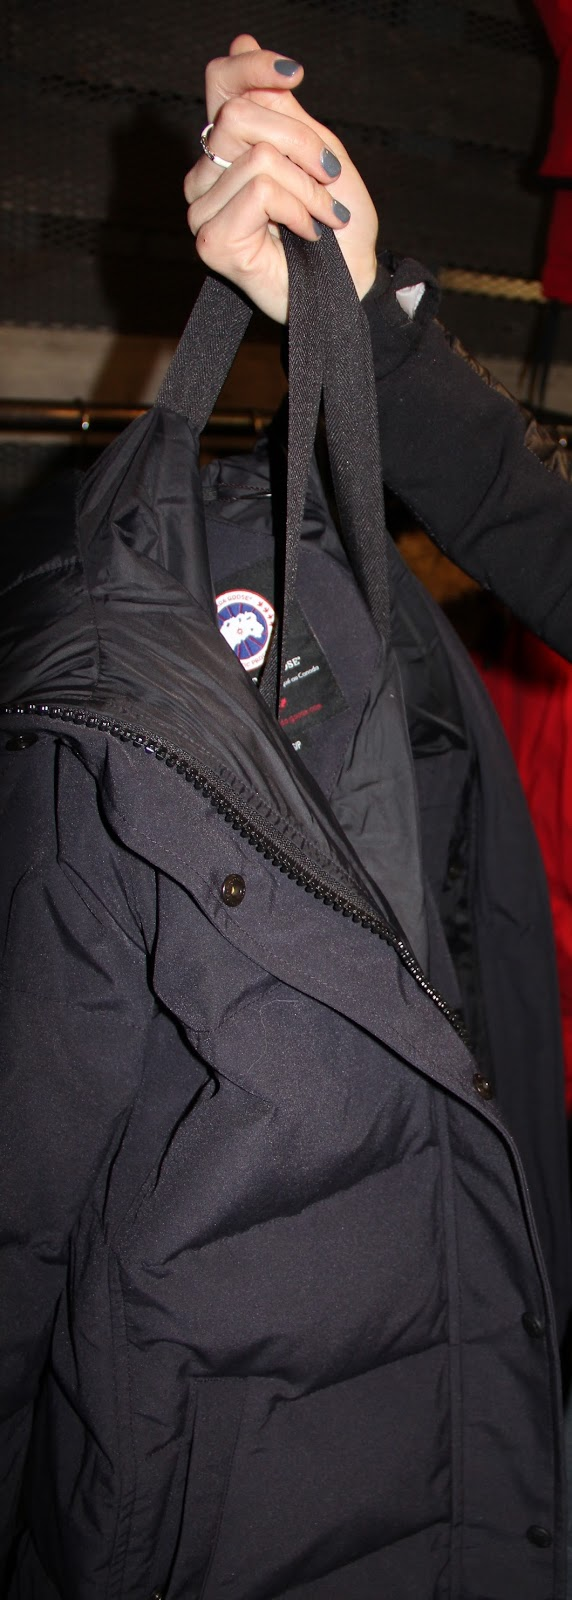 ef8fdc372 free shipping Canada Goose Youth Logan Parka - 3XL - Pacific Blue